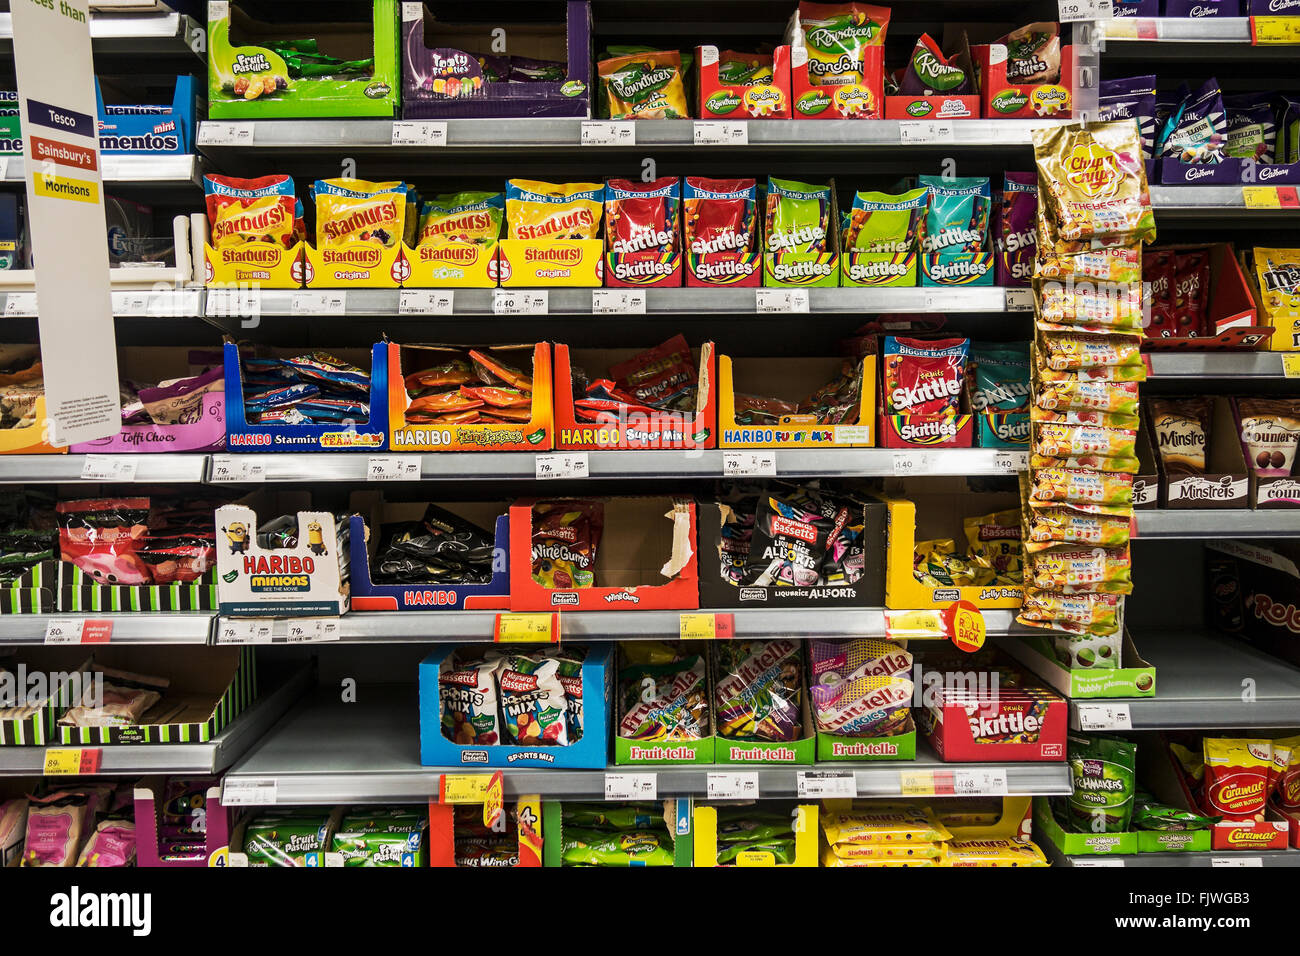 Sweets for sale on display in a supermarket. - Stock Image